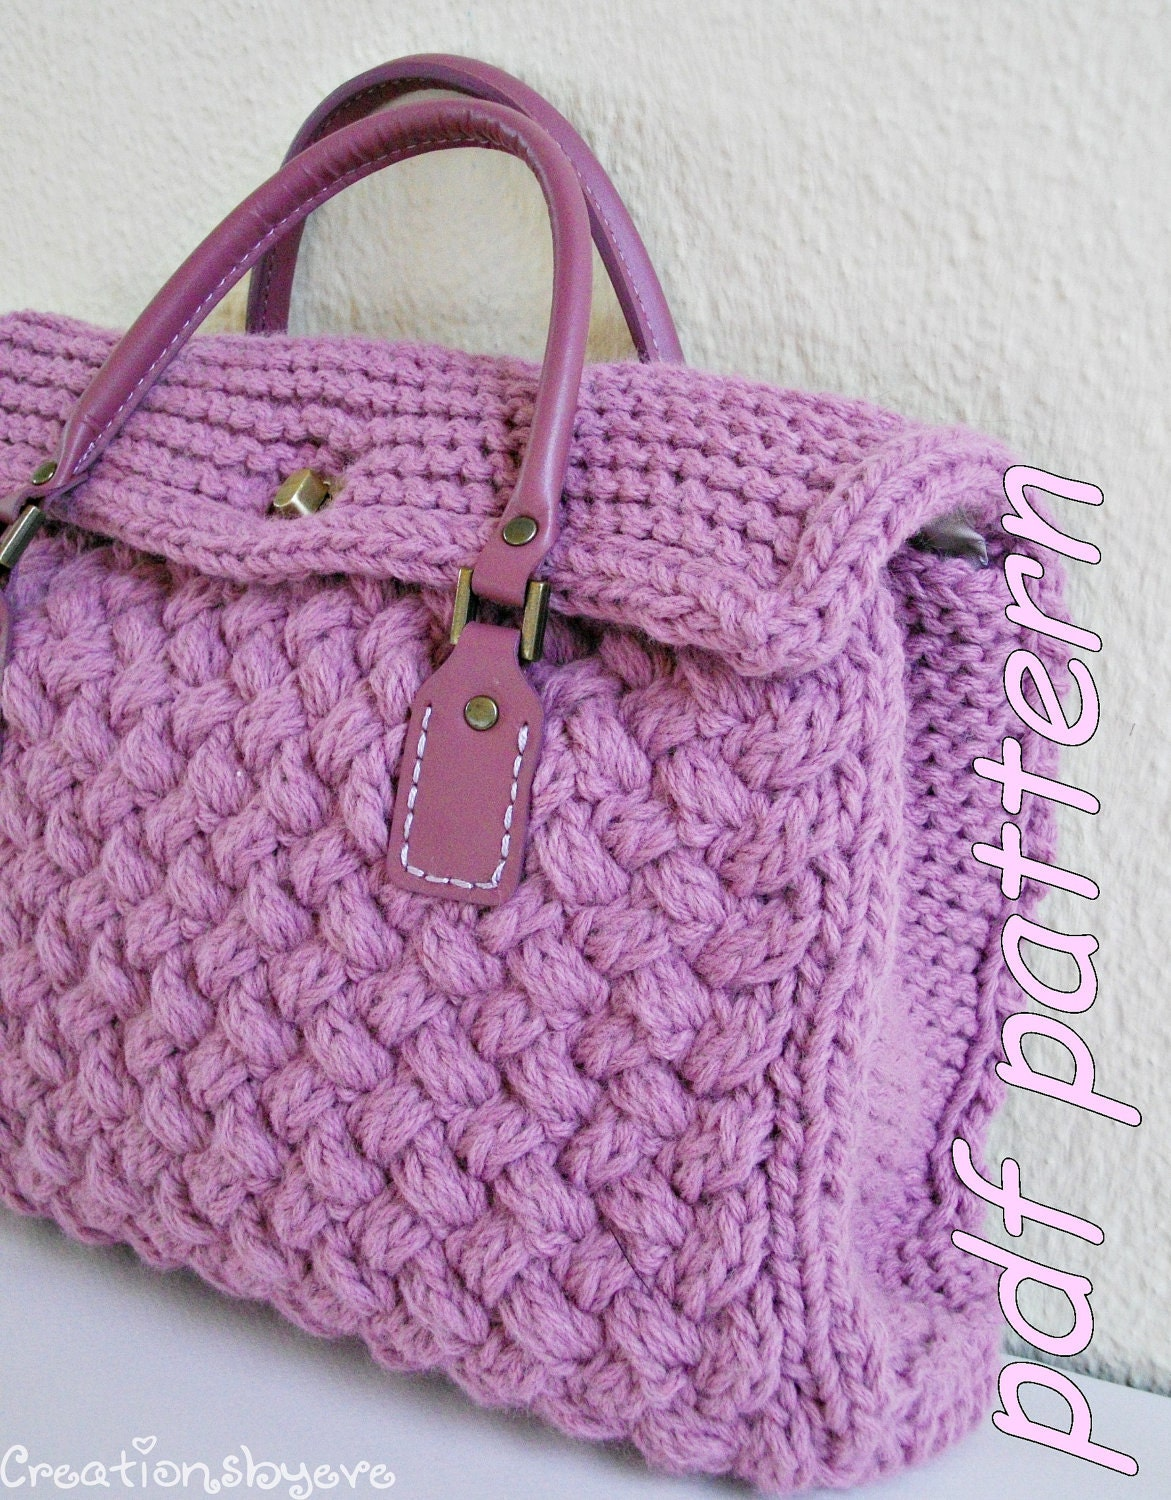 Handbag Knitting Patterns : Stylish small textured hand-knit bag PDF pattern